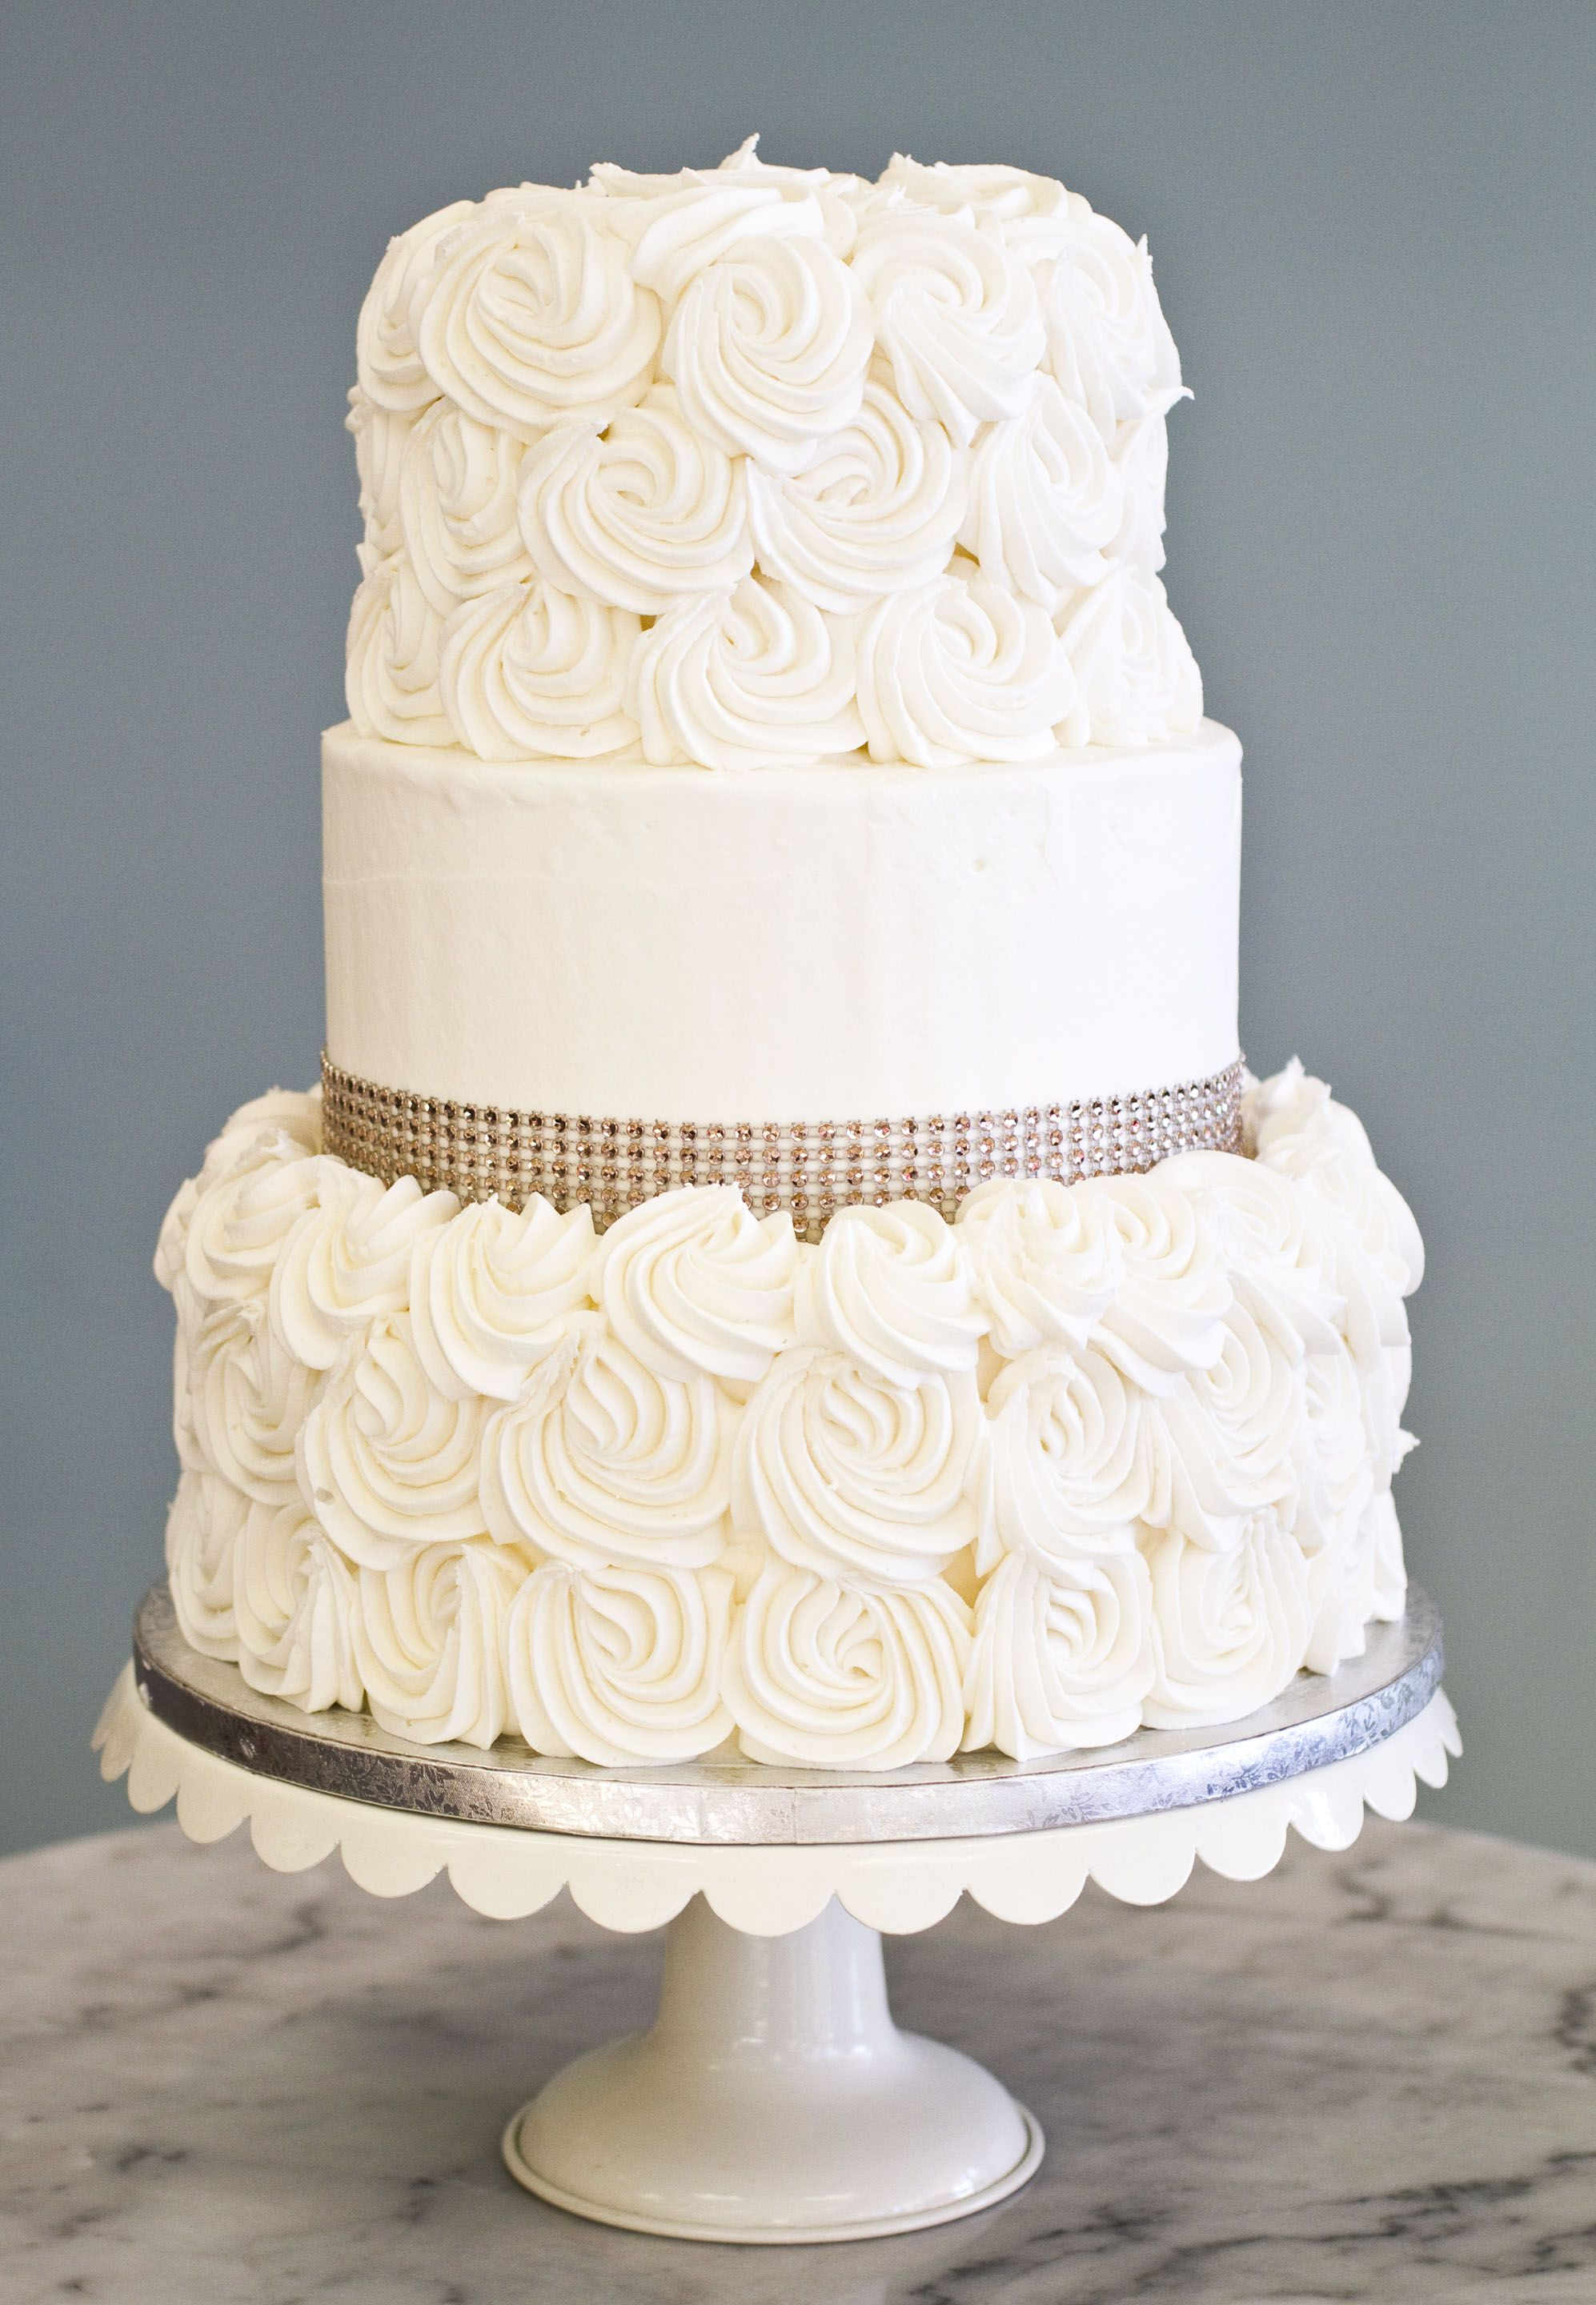 A Simple, Elegant Wedding Cake With Rosettes And Rhinestones. Cake # 064.